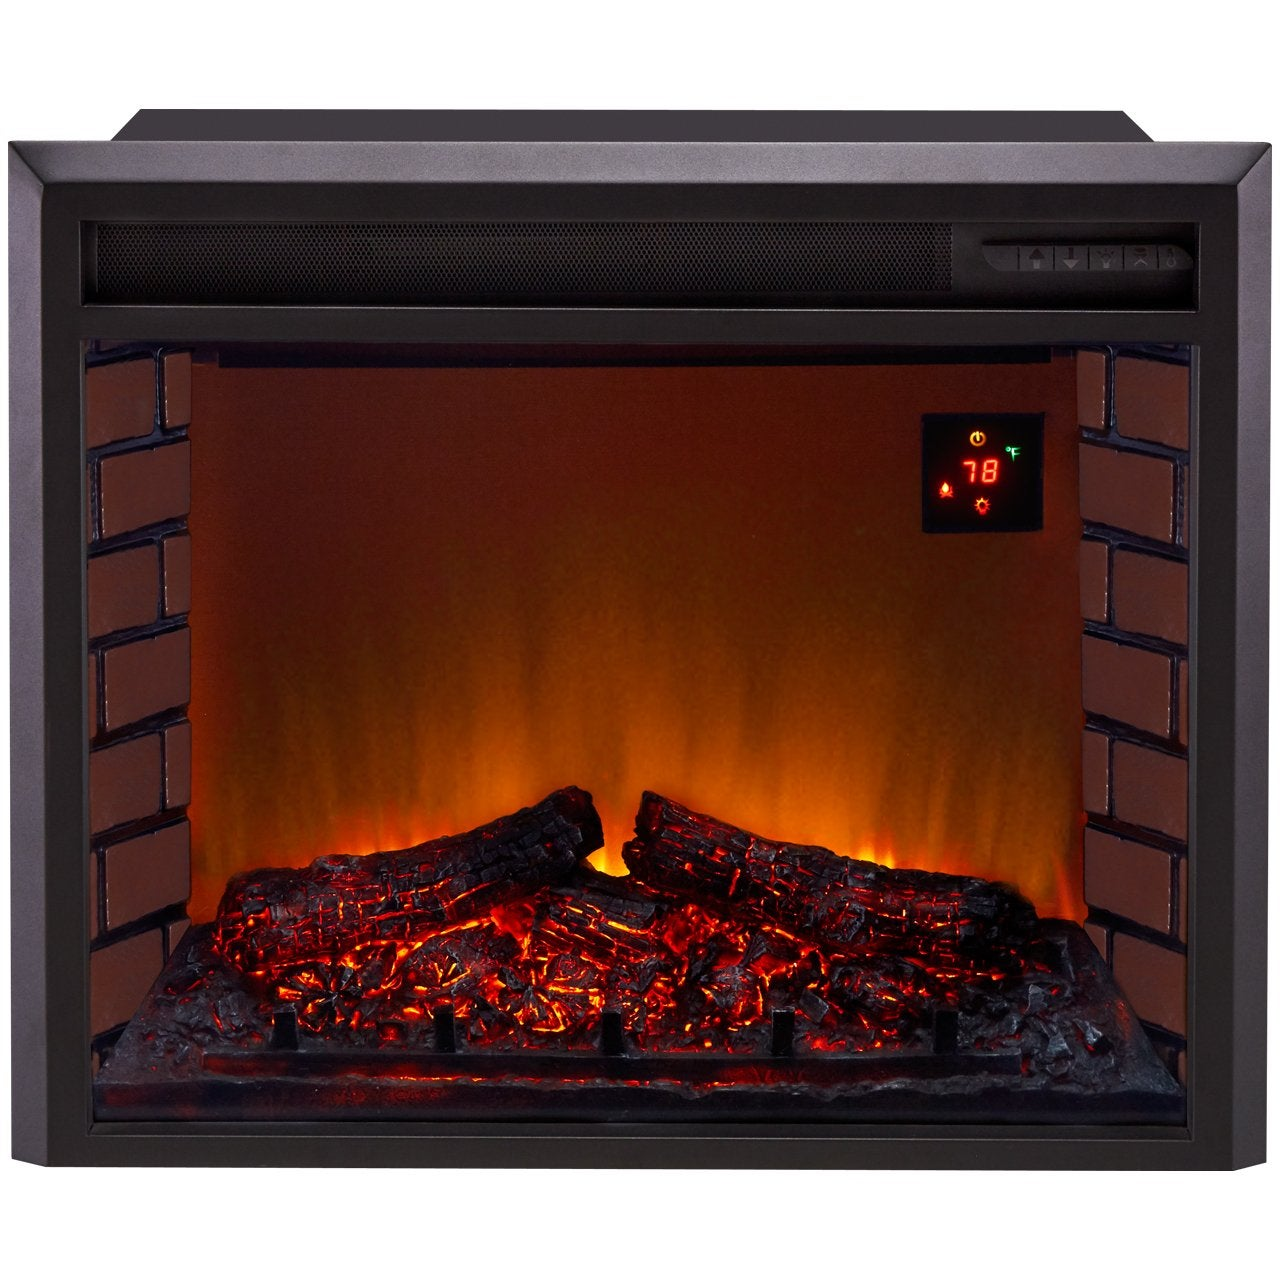 Cosy 2000W 30 inch Electric Fireplace Insert | Buy ...